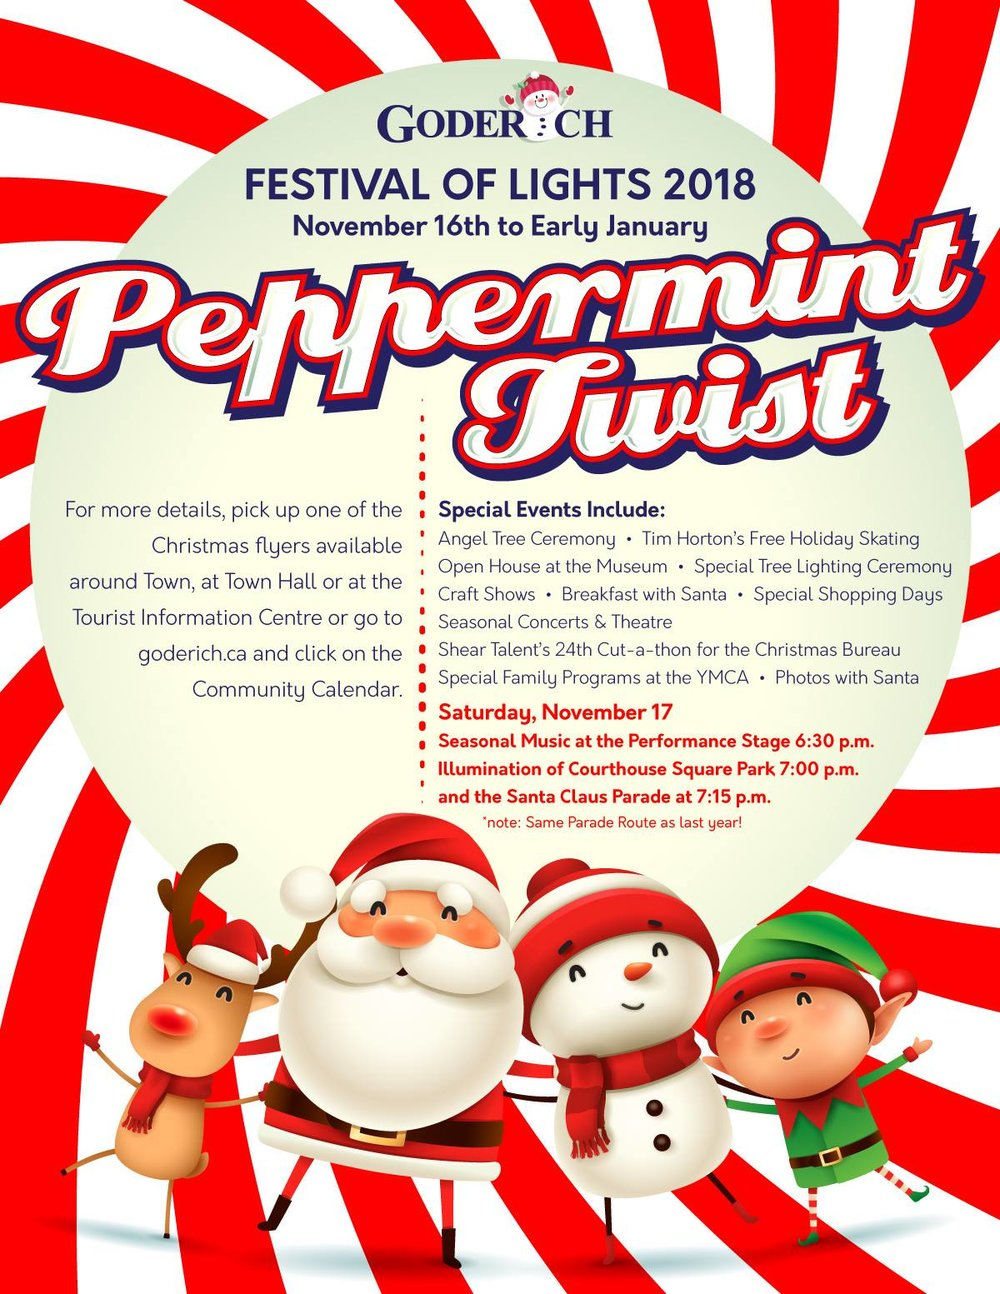 Town of Goderich Festival of Lights 2018